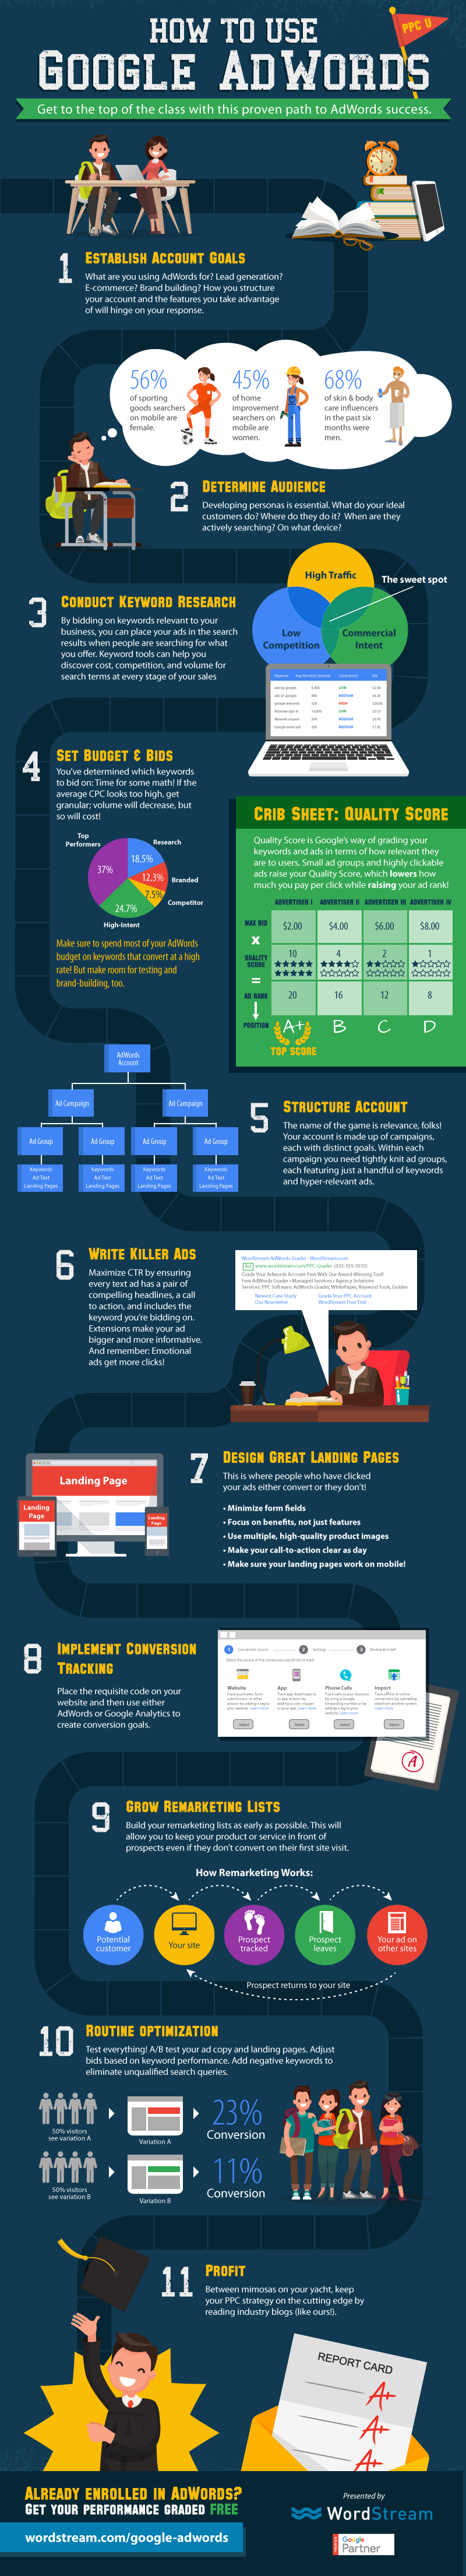 How to Use Google AdWords - #Infographic